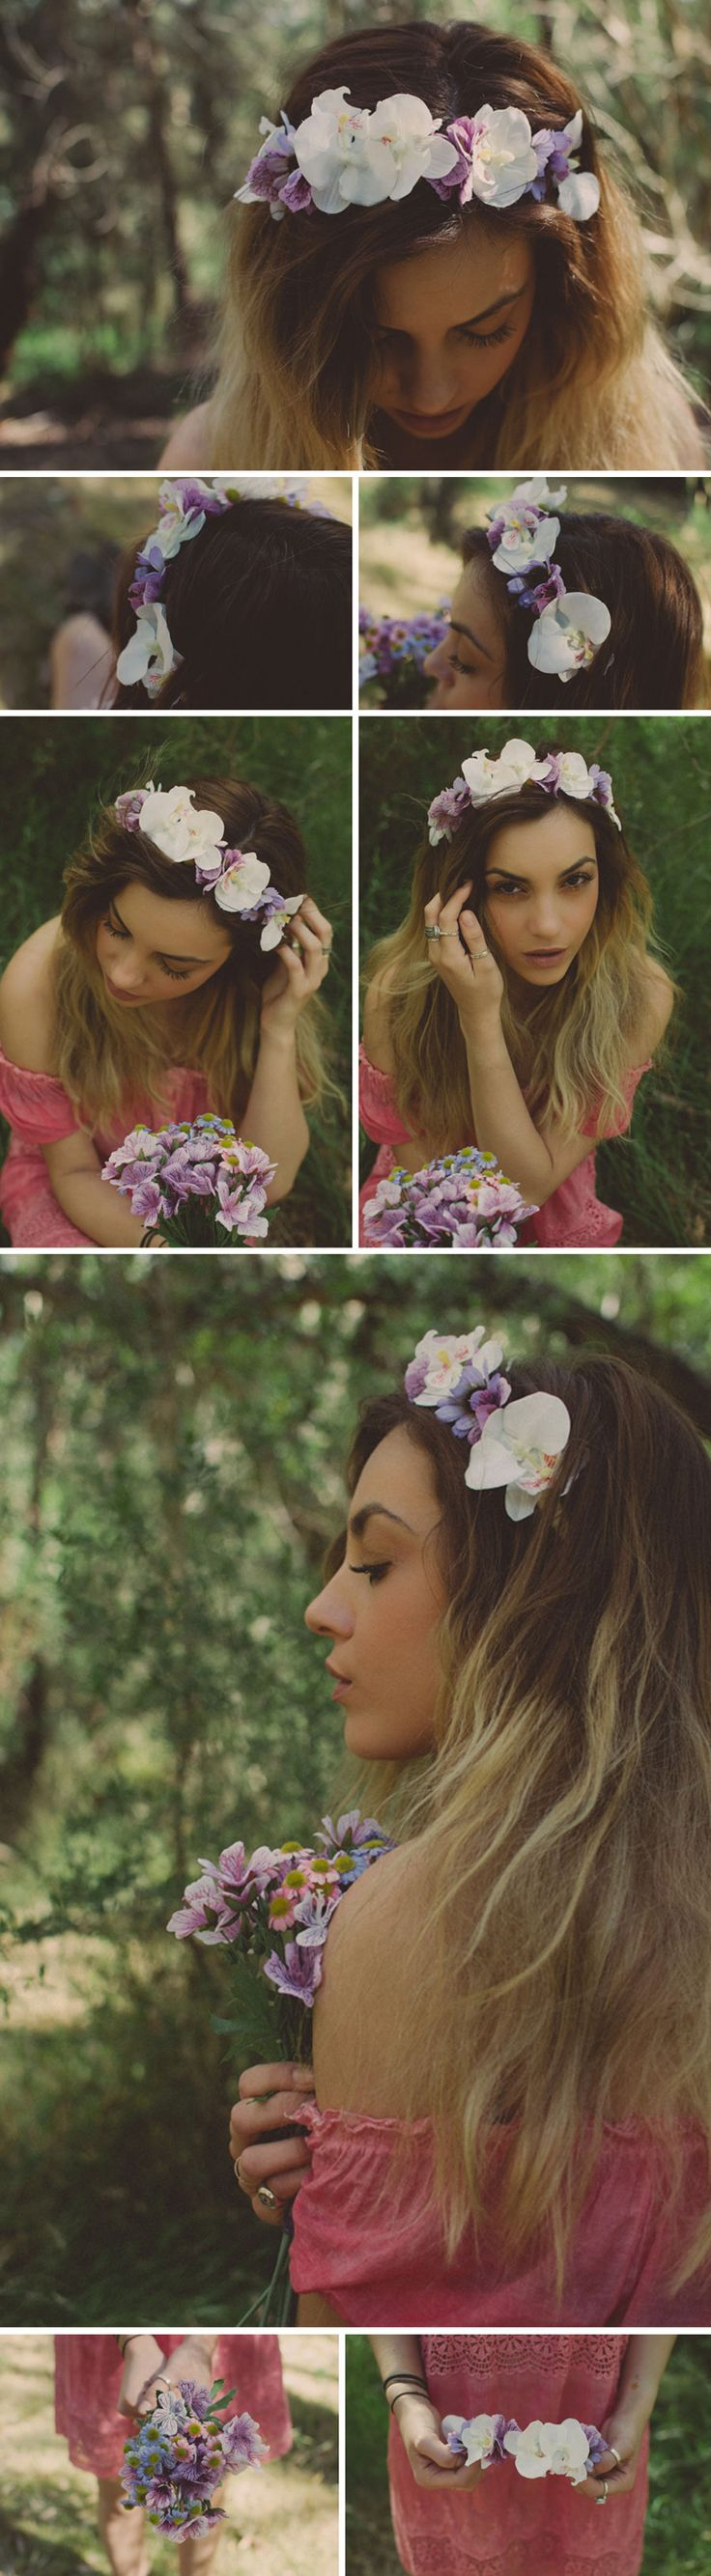 DIY floral crown tutorial featured on Fawn Magazine Online  #DIY #floral #crown #tutorial #TheDustyFoxx #Fawn #beauty